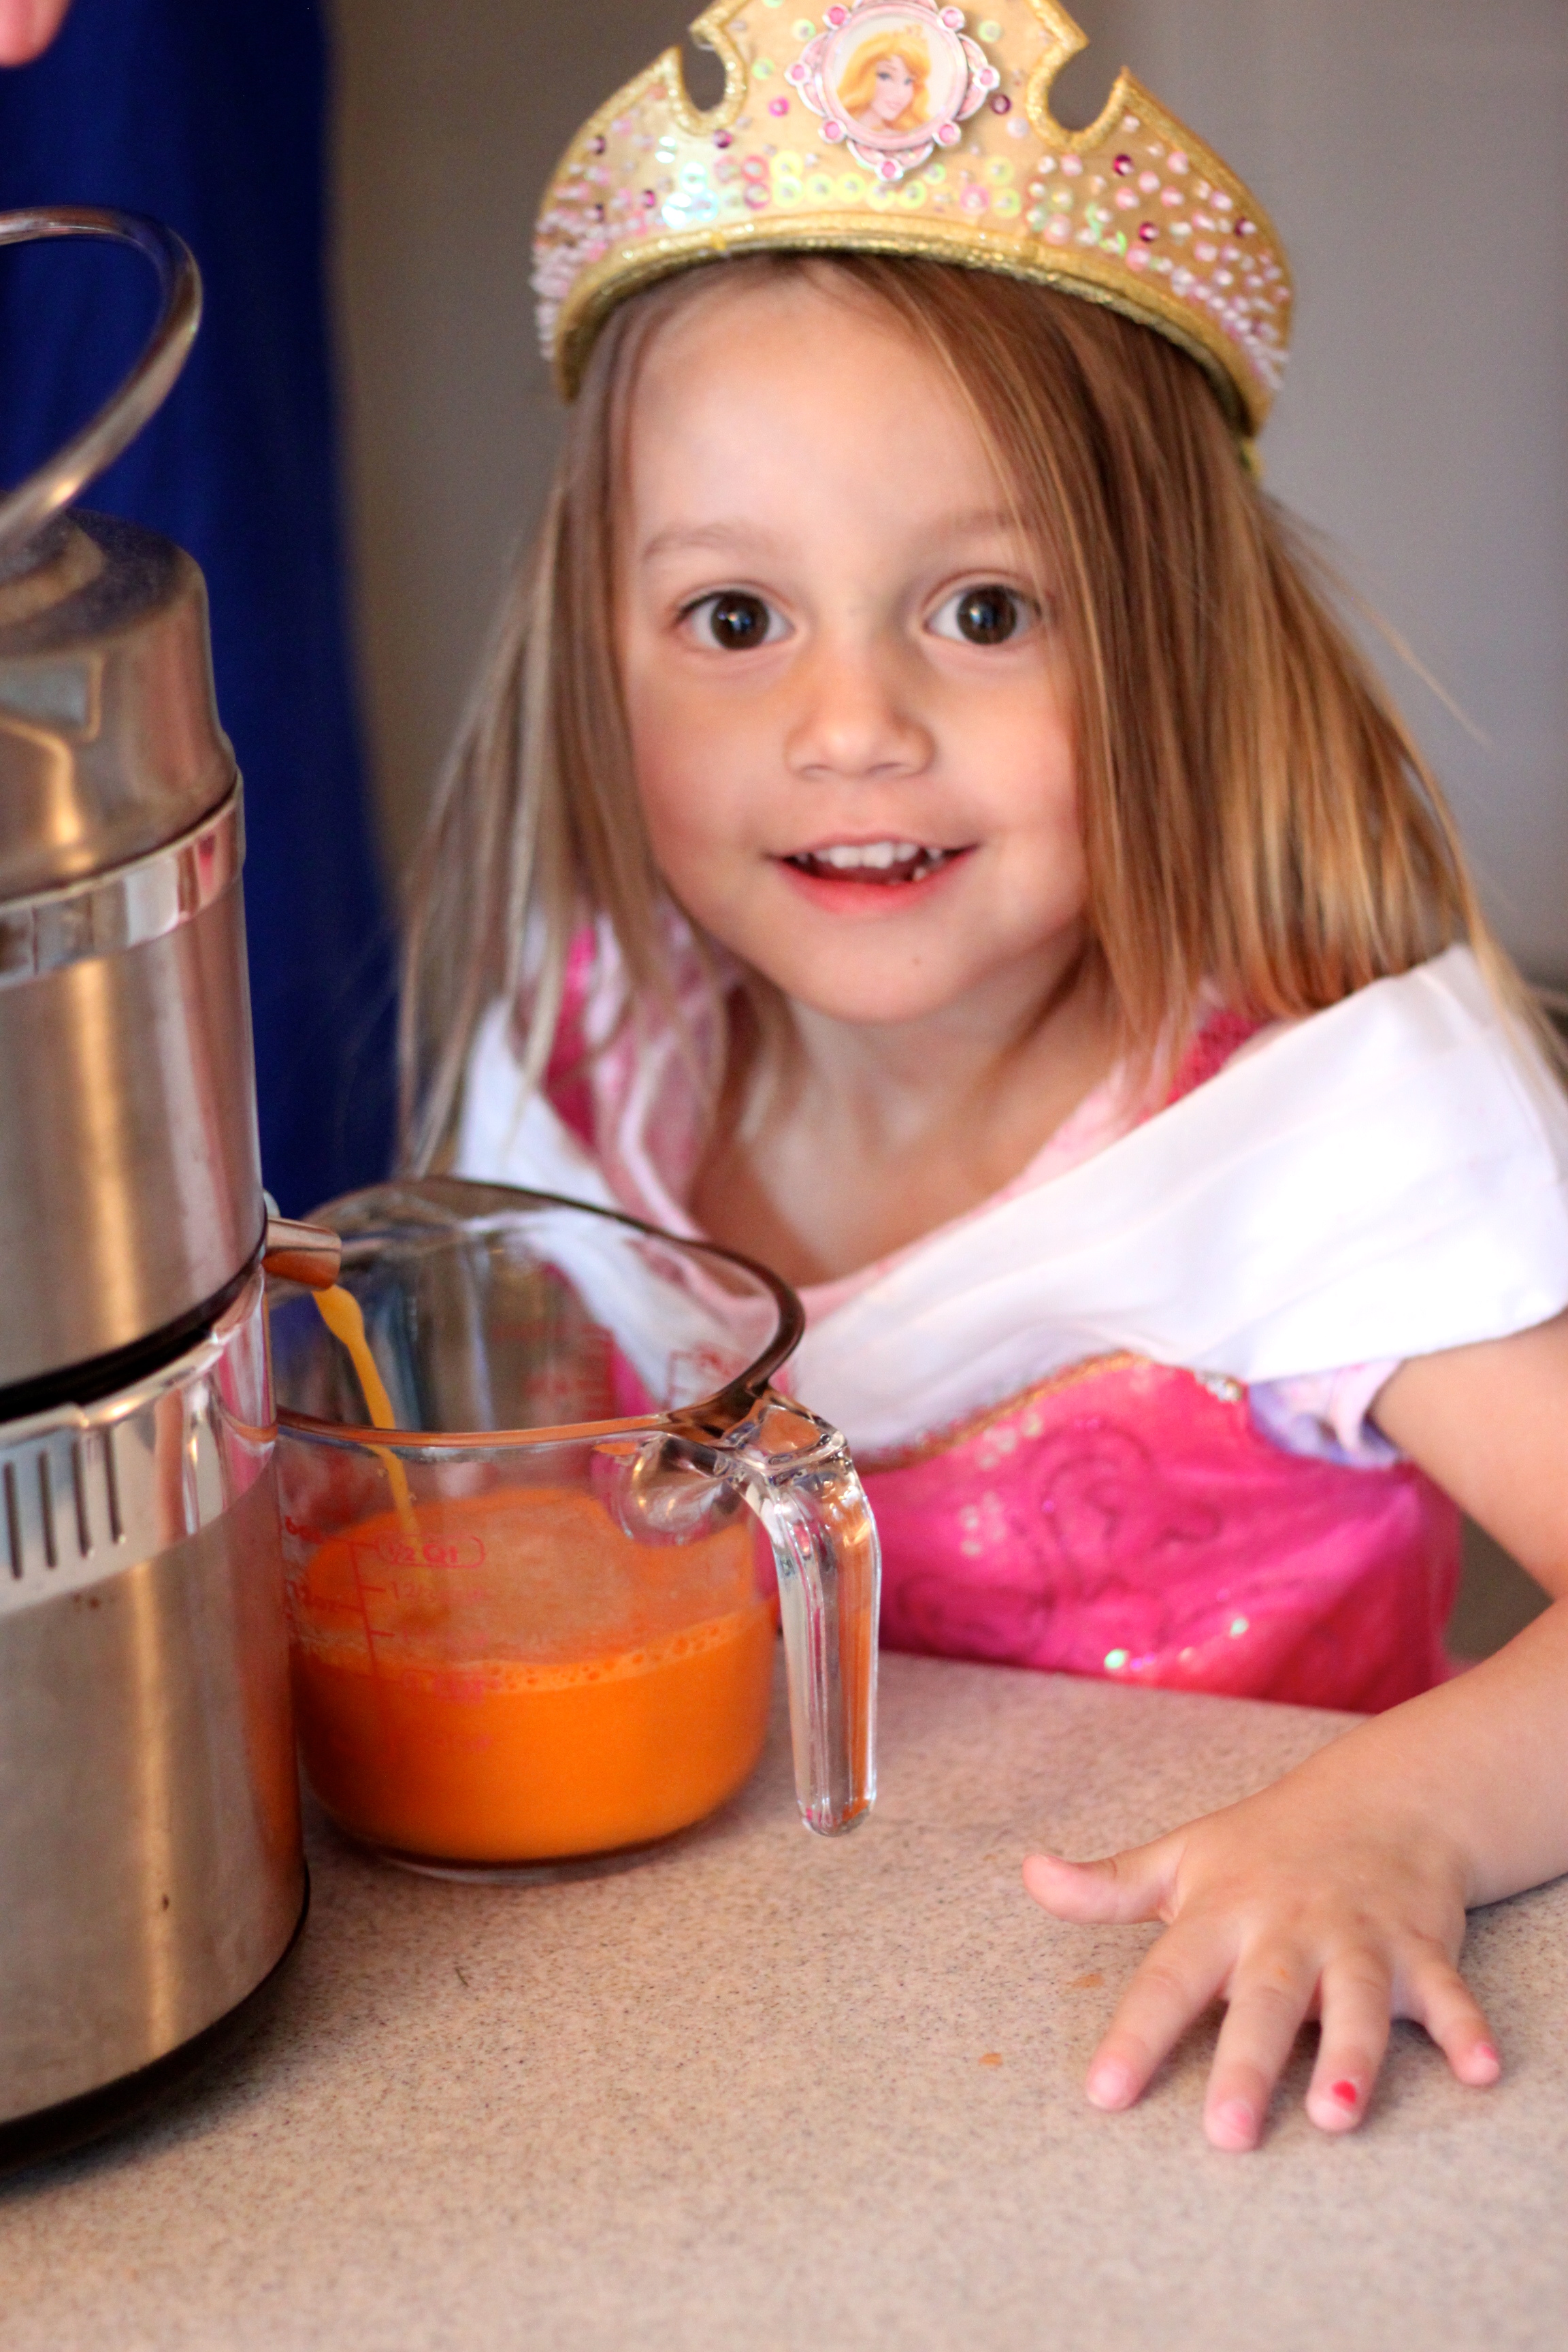 Orange Carrot Juice-Perfect for your kids to balance out those Halloween Goodies! from The Diva Dish